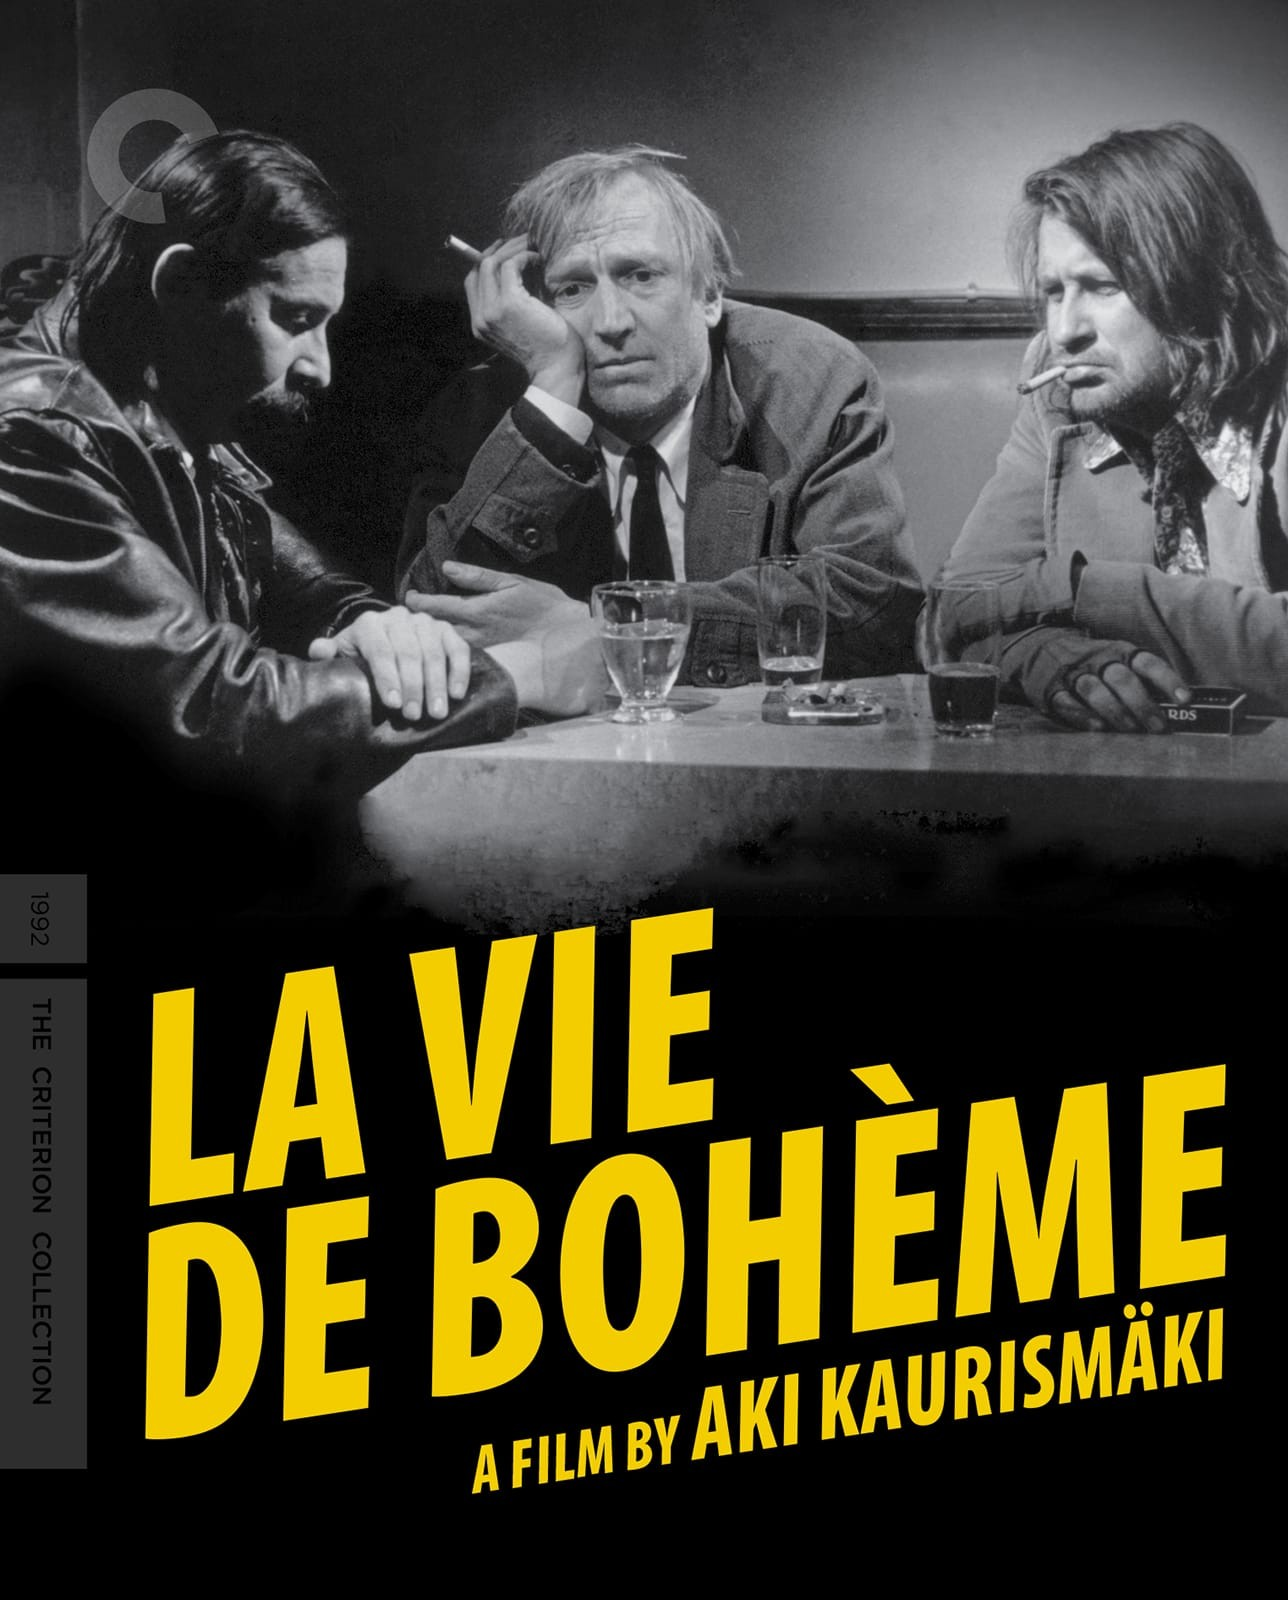 what does la vie boheme mean